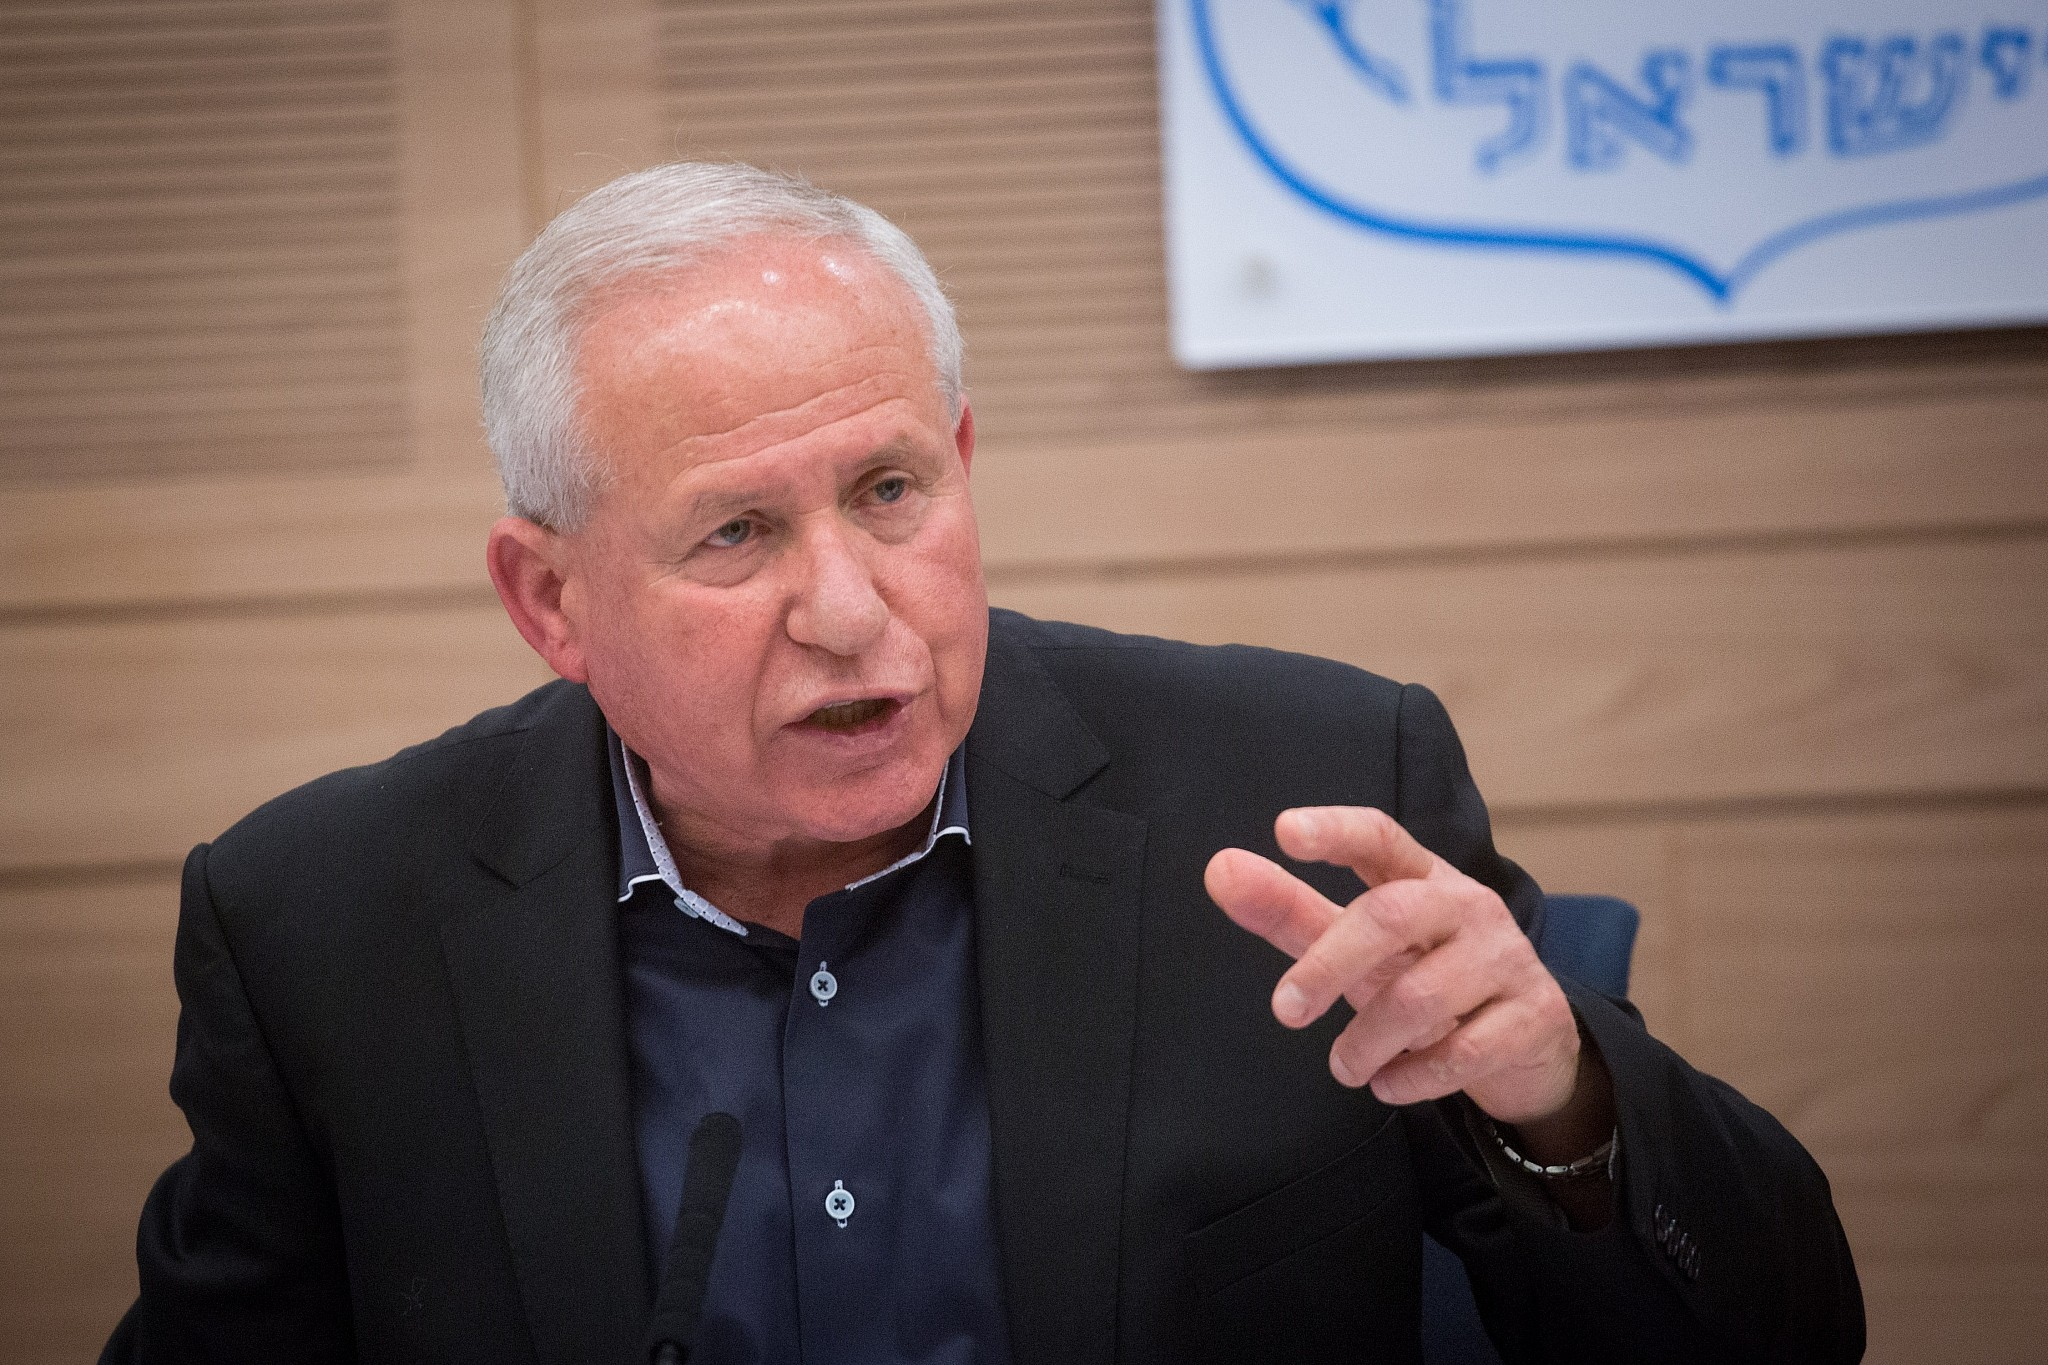 19Israeli PM Given Power to Declare War With Only Defense Minister's Approval